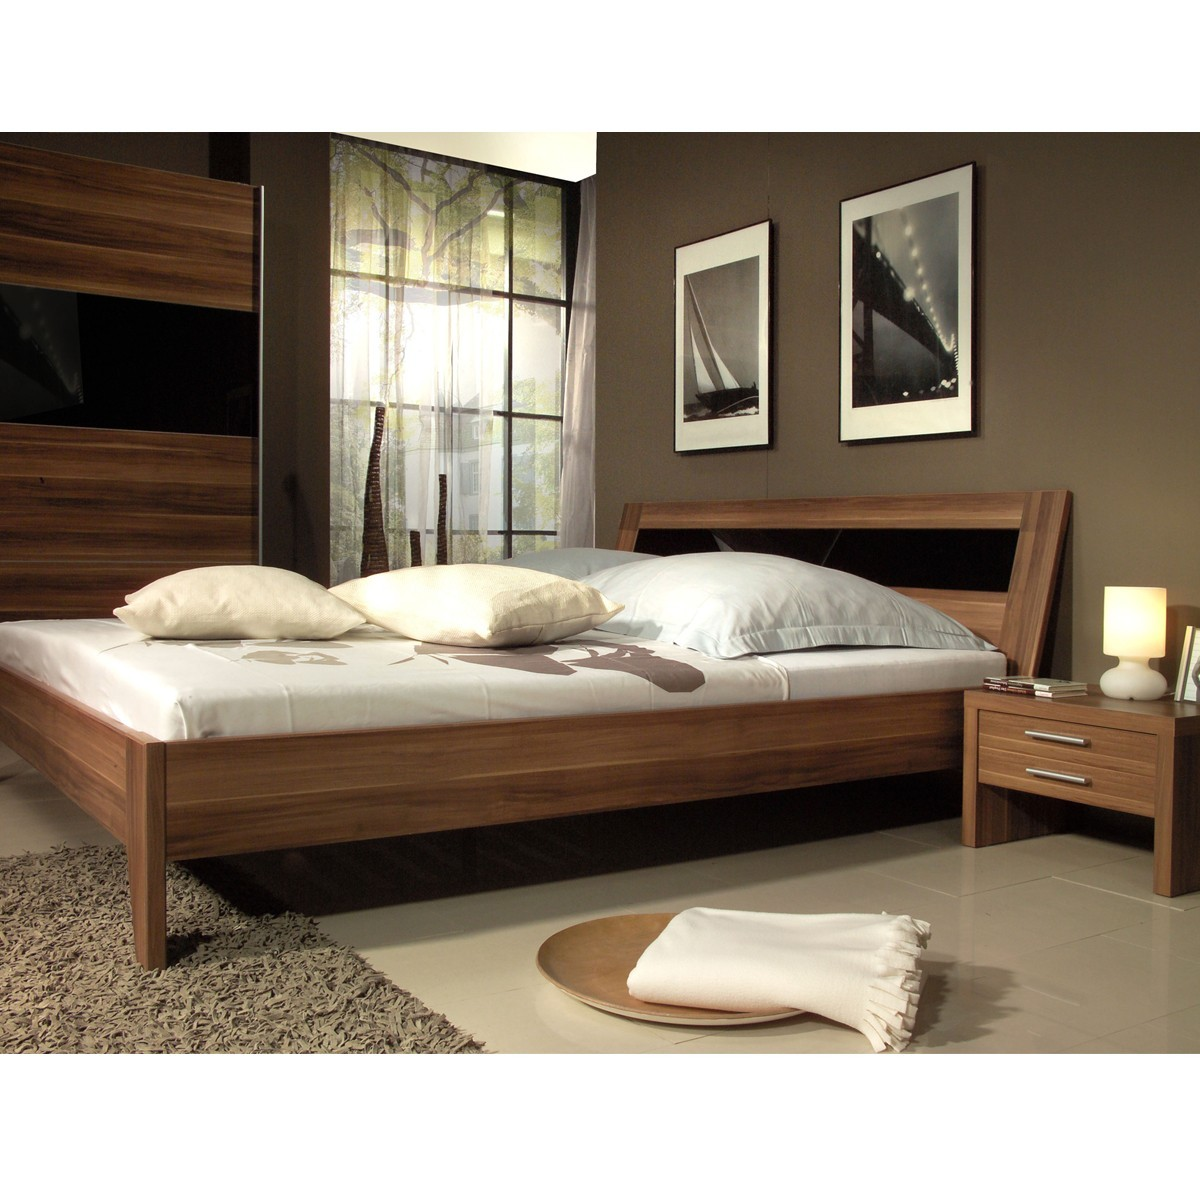 bett 140x200 doppelbett 2x nachtkommoden dreamnight in. Black Bedroom Furniture Sets. Home Design Ideas